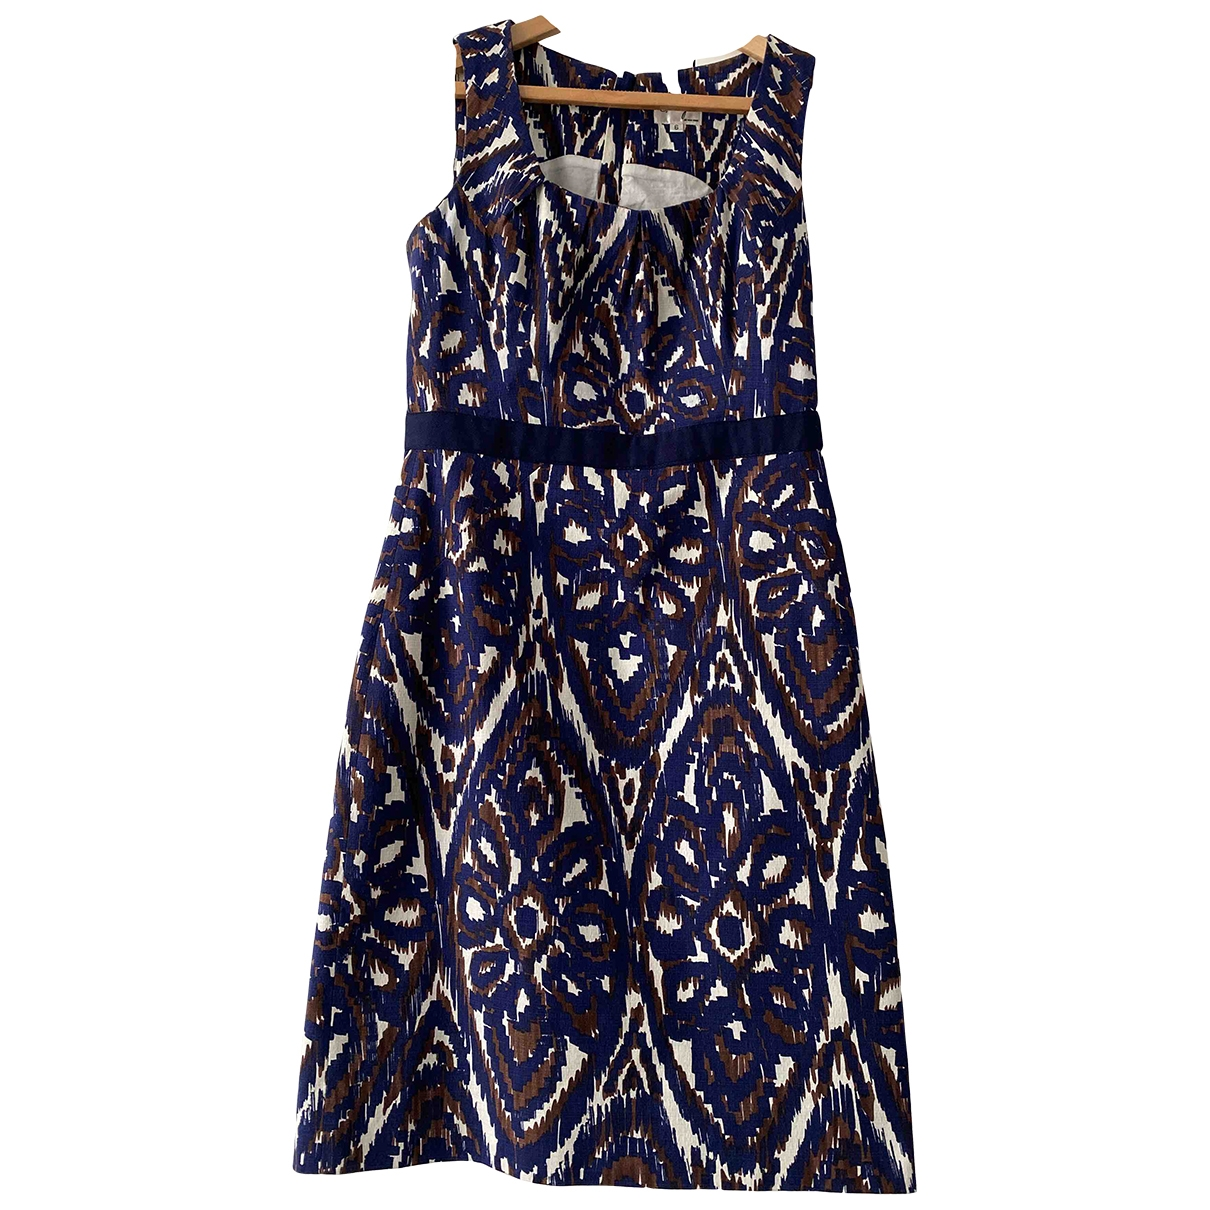 Milly \N Navy Cotton dress for Women 6 US